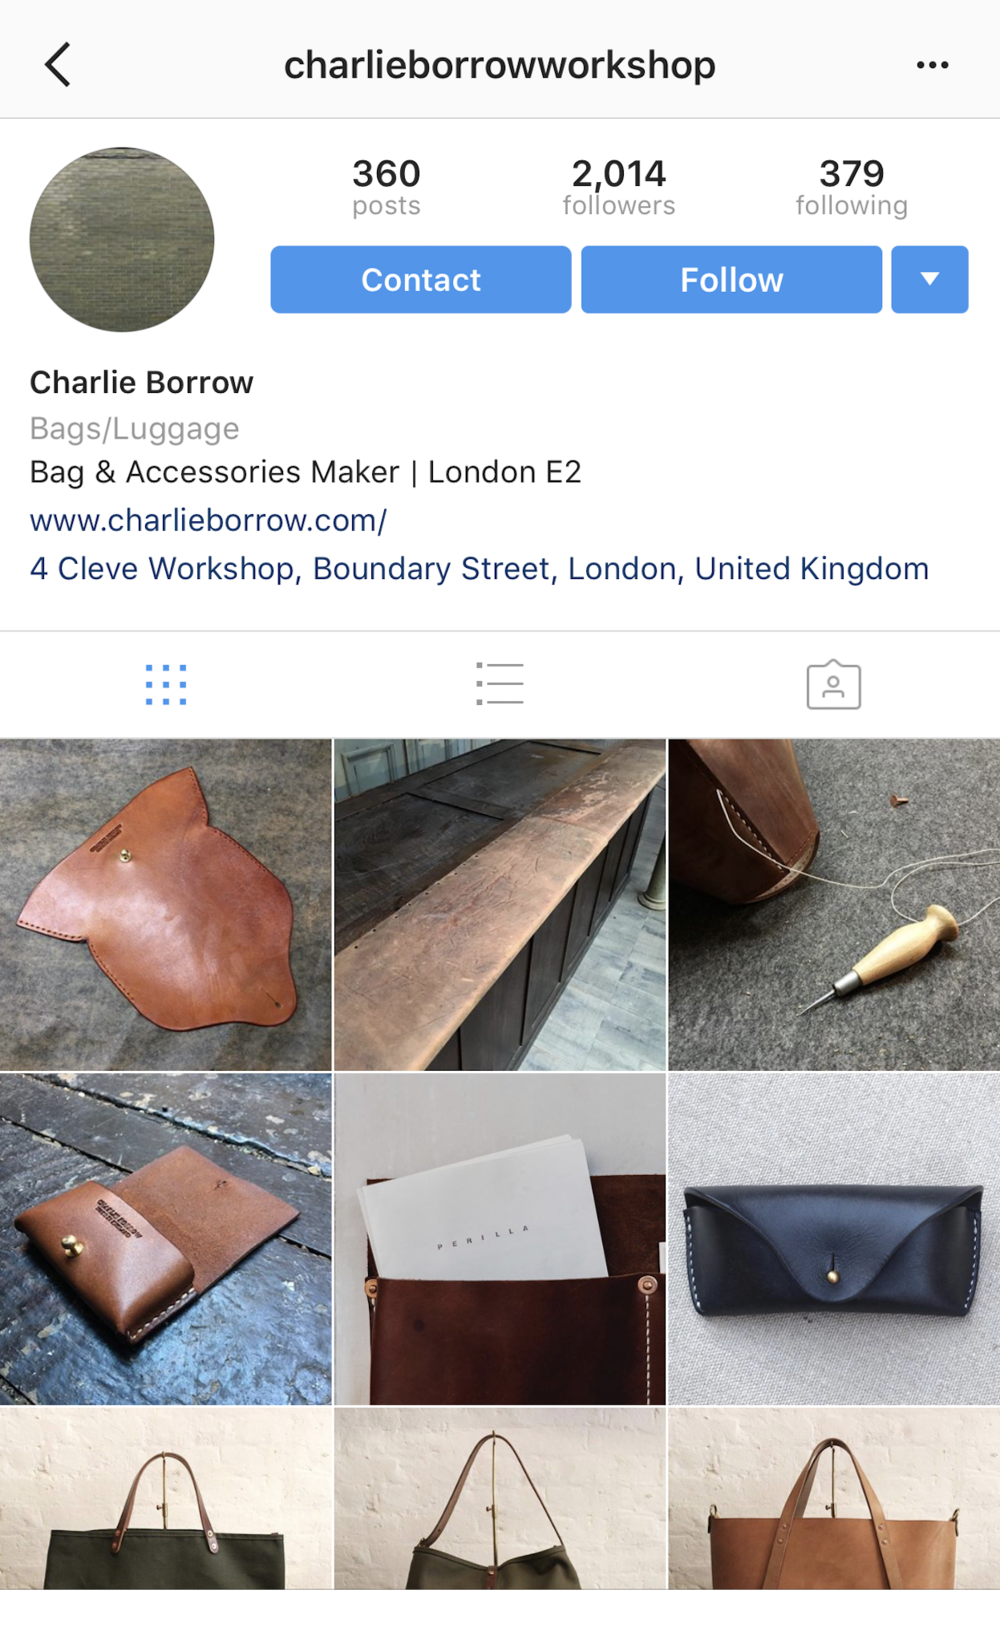 charlieborrowworkshop